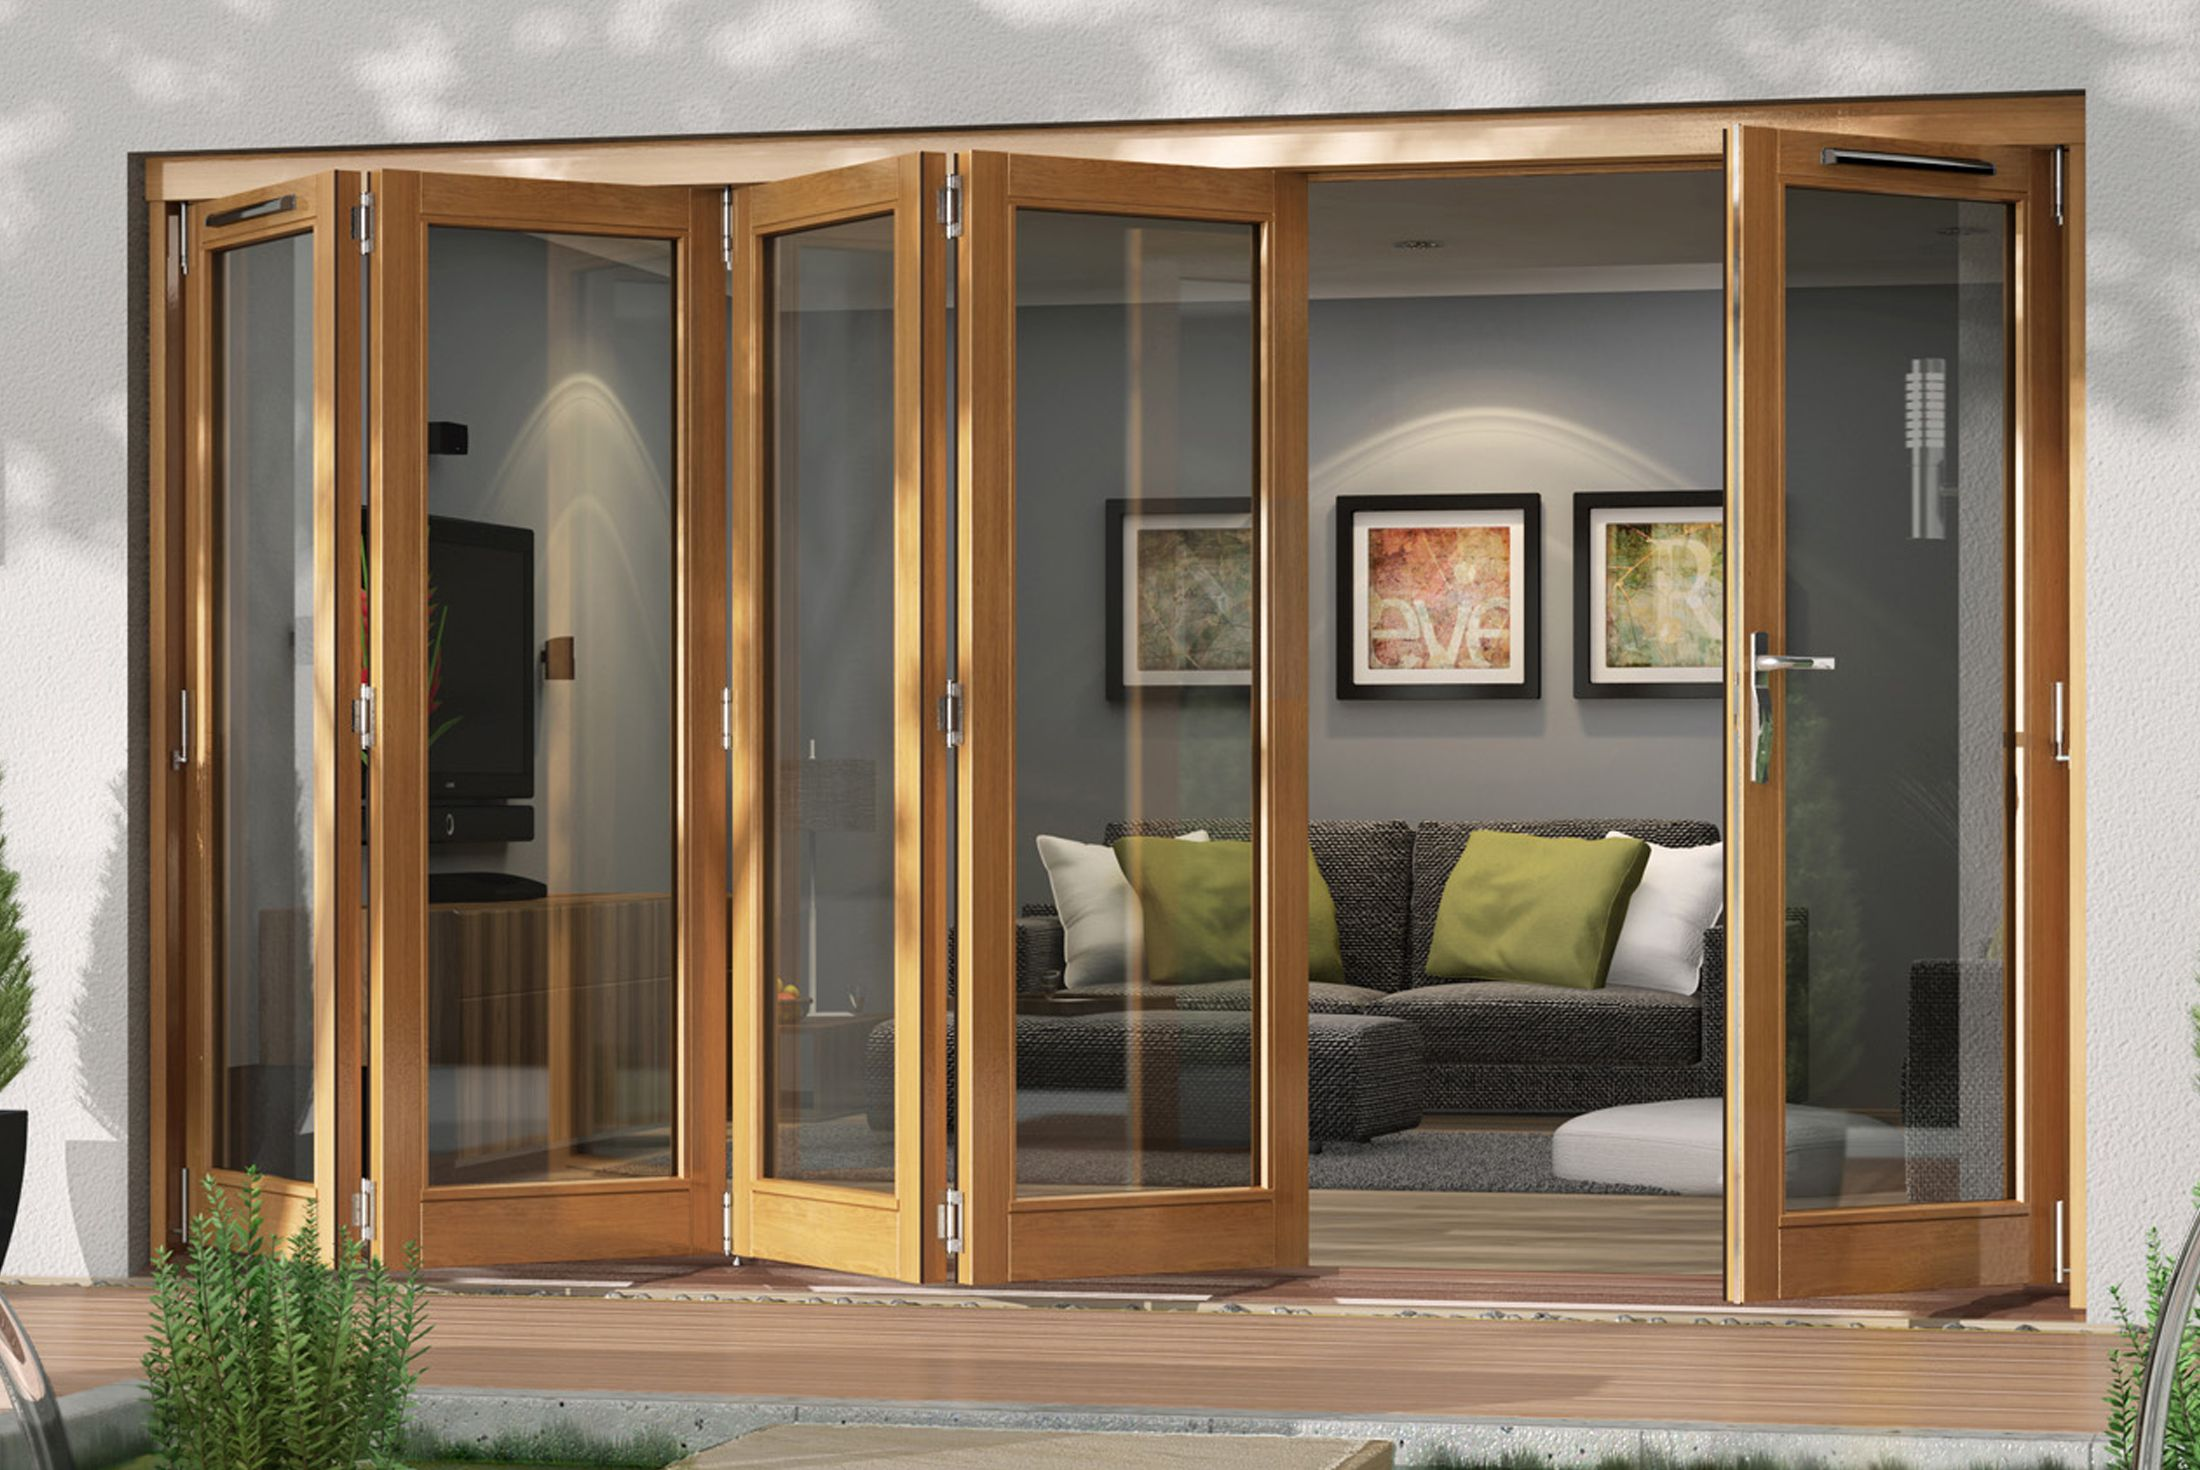 Patio doors buying guide help ideas diy at b q Doors for patio